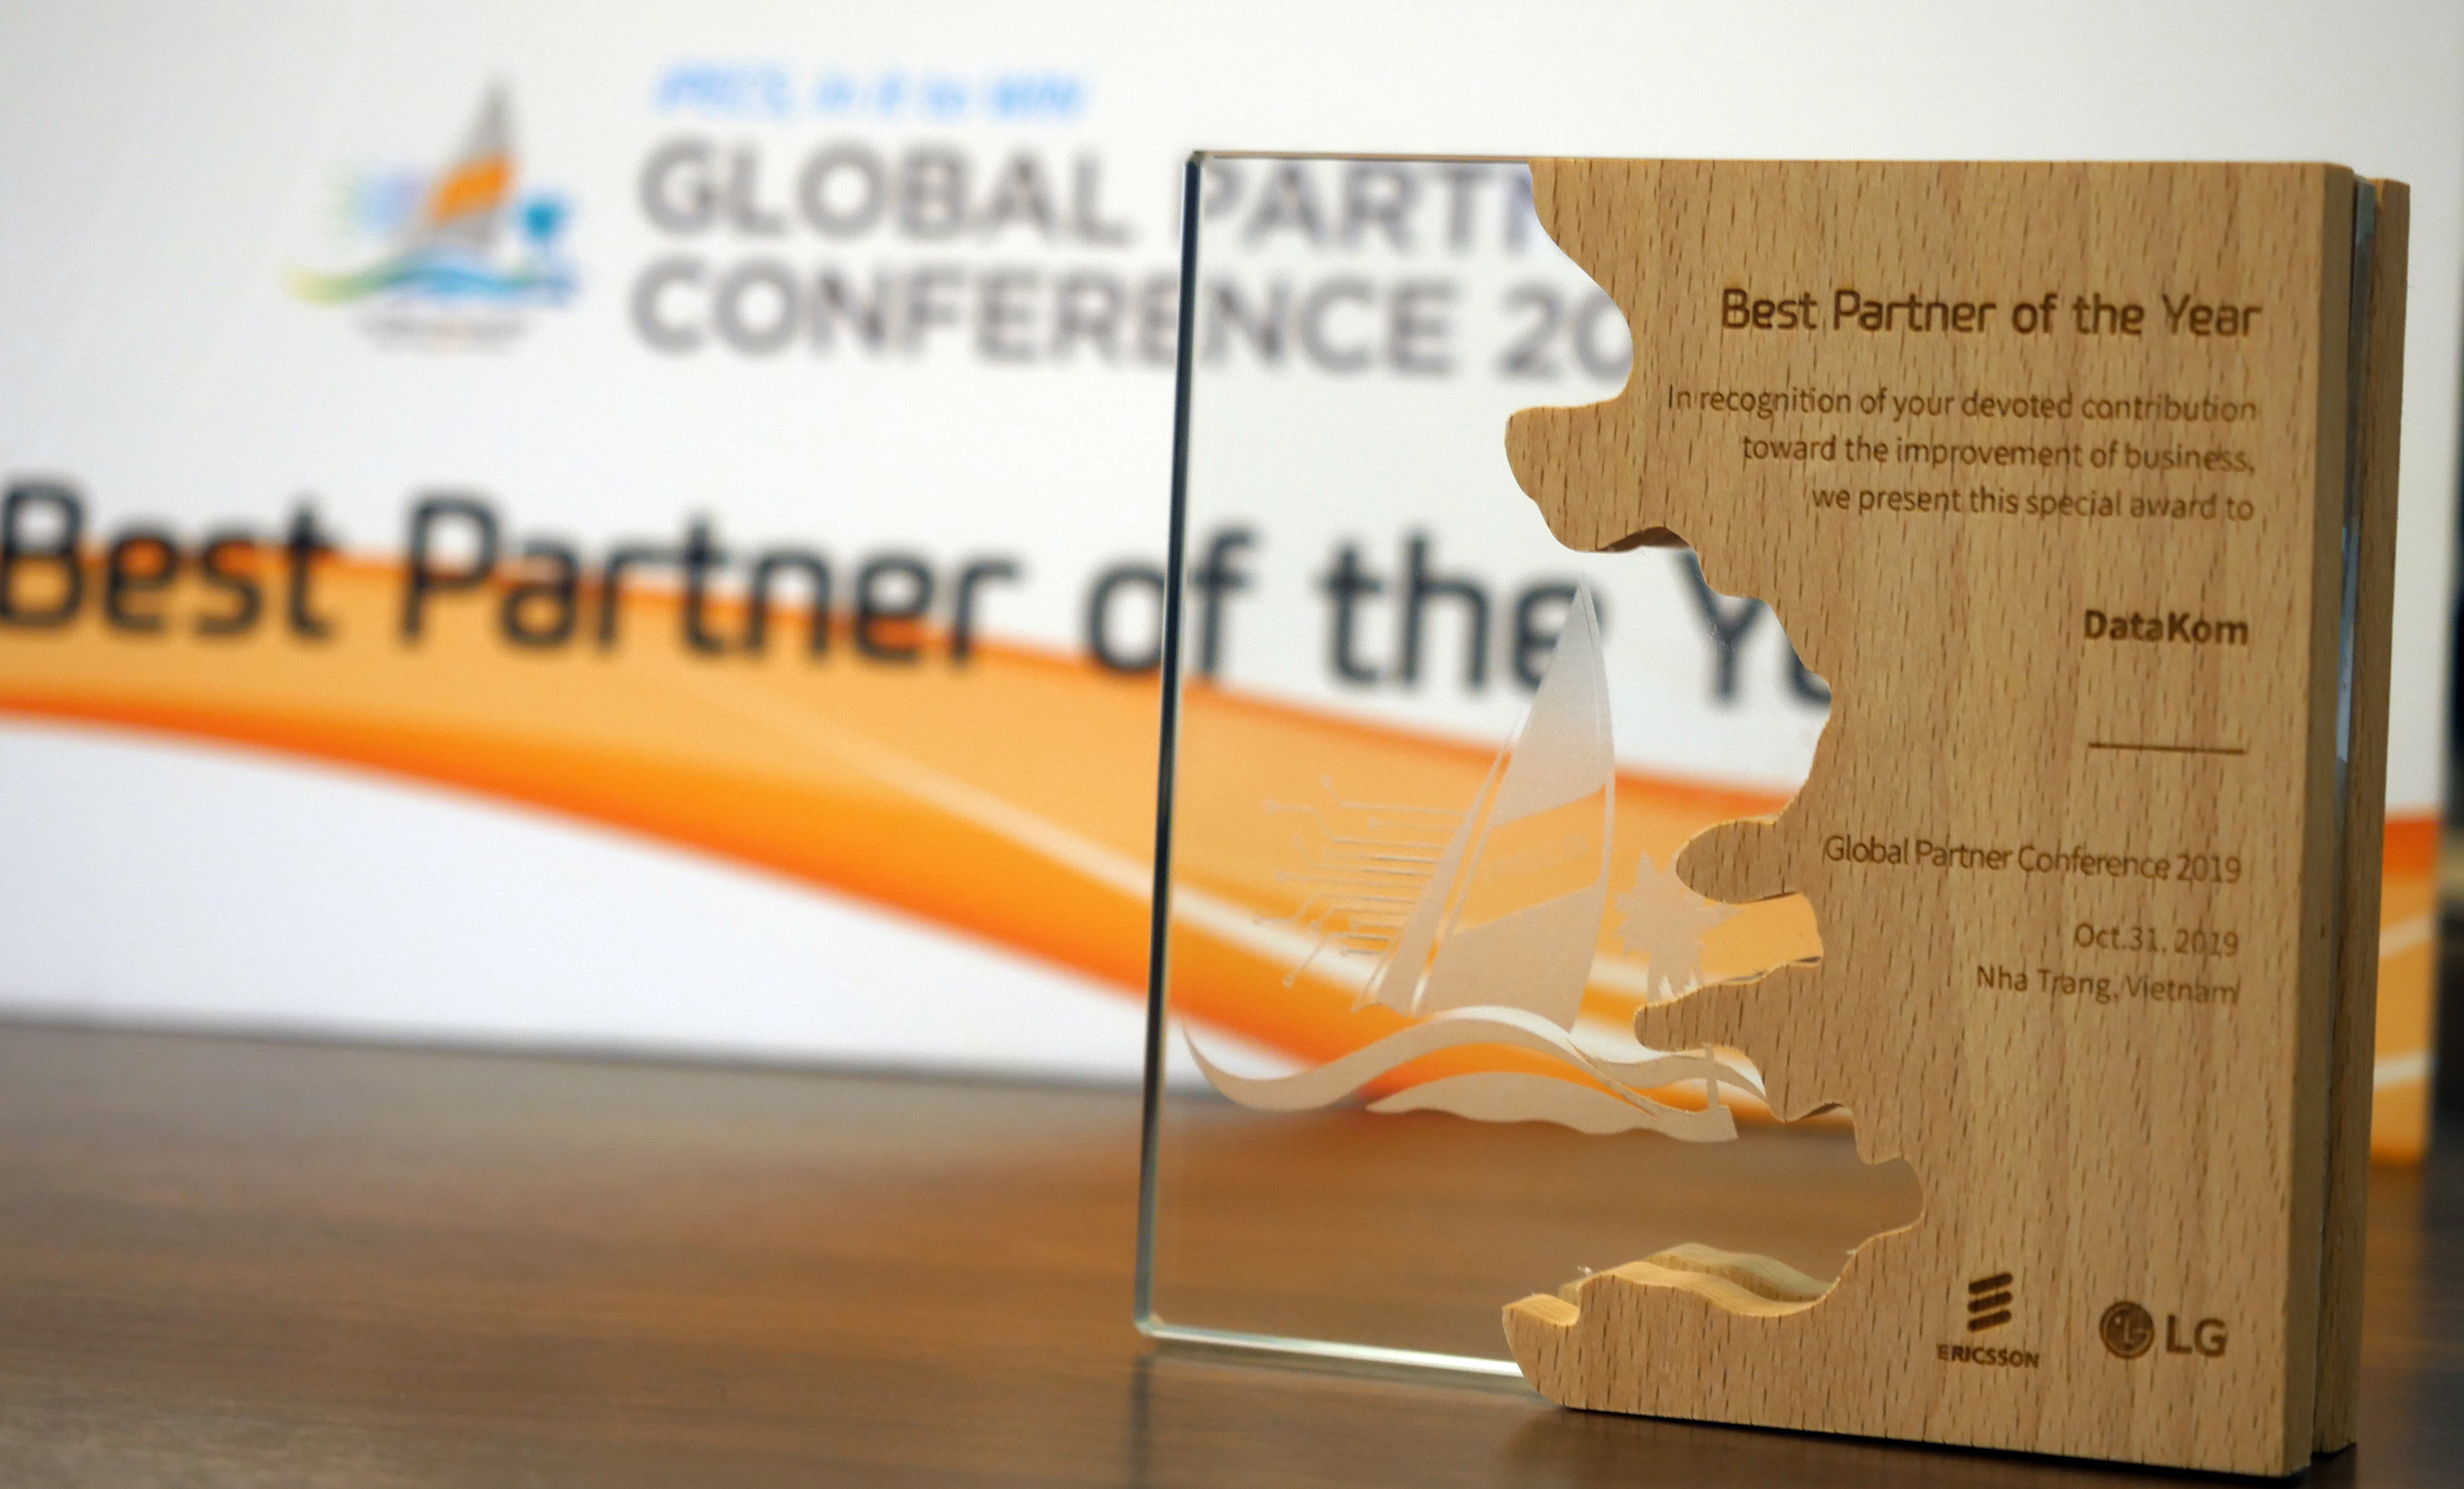 DataKom – Winners of 'Global Best Partner of the Year' award!